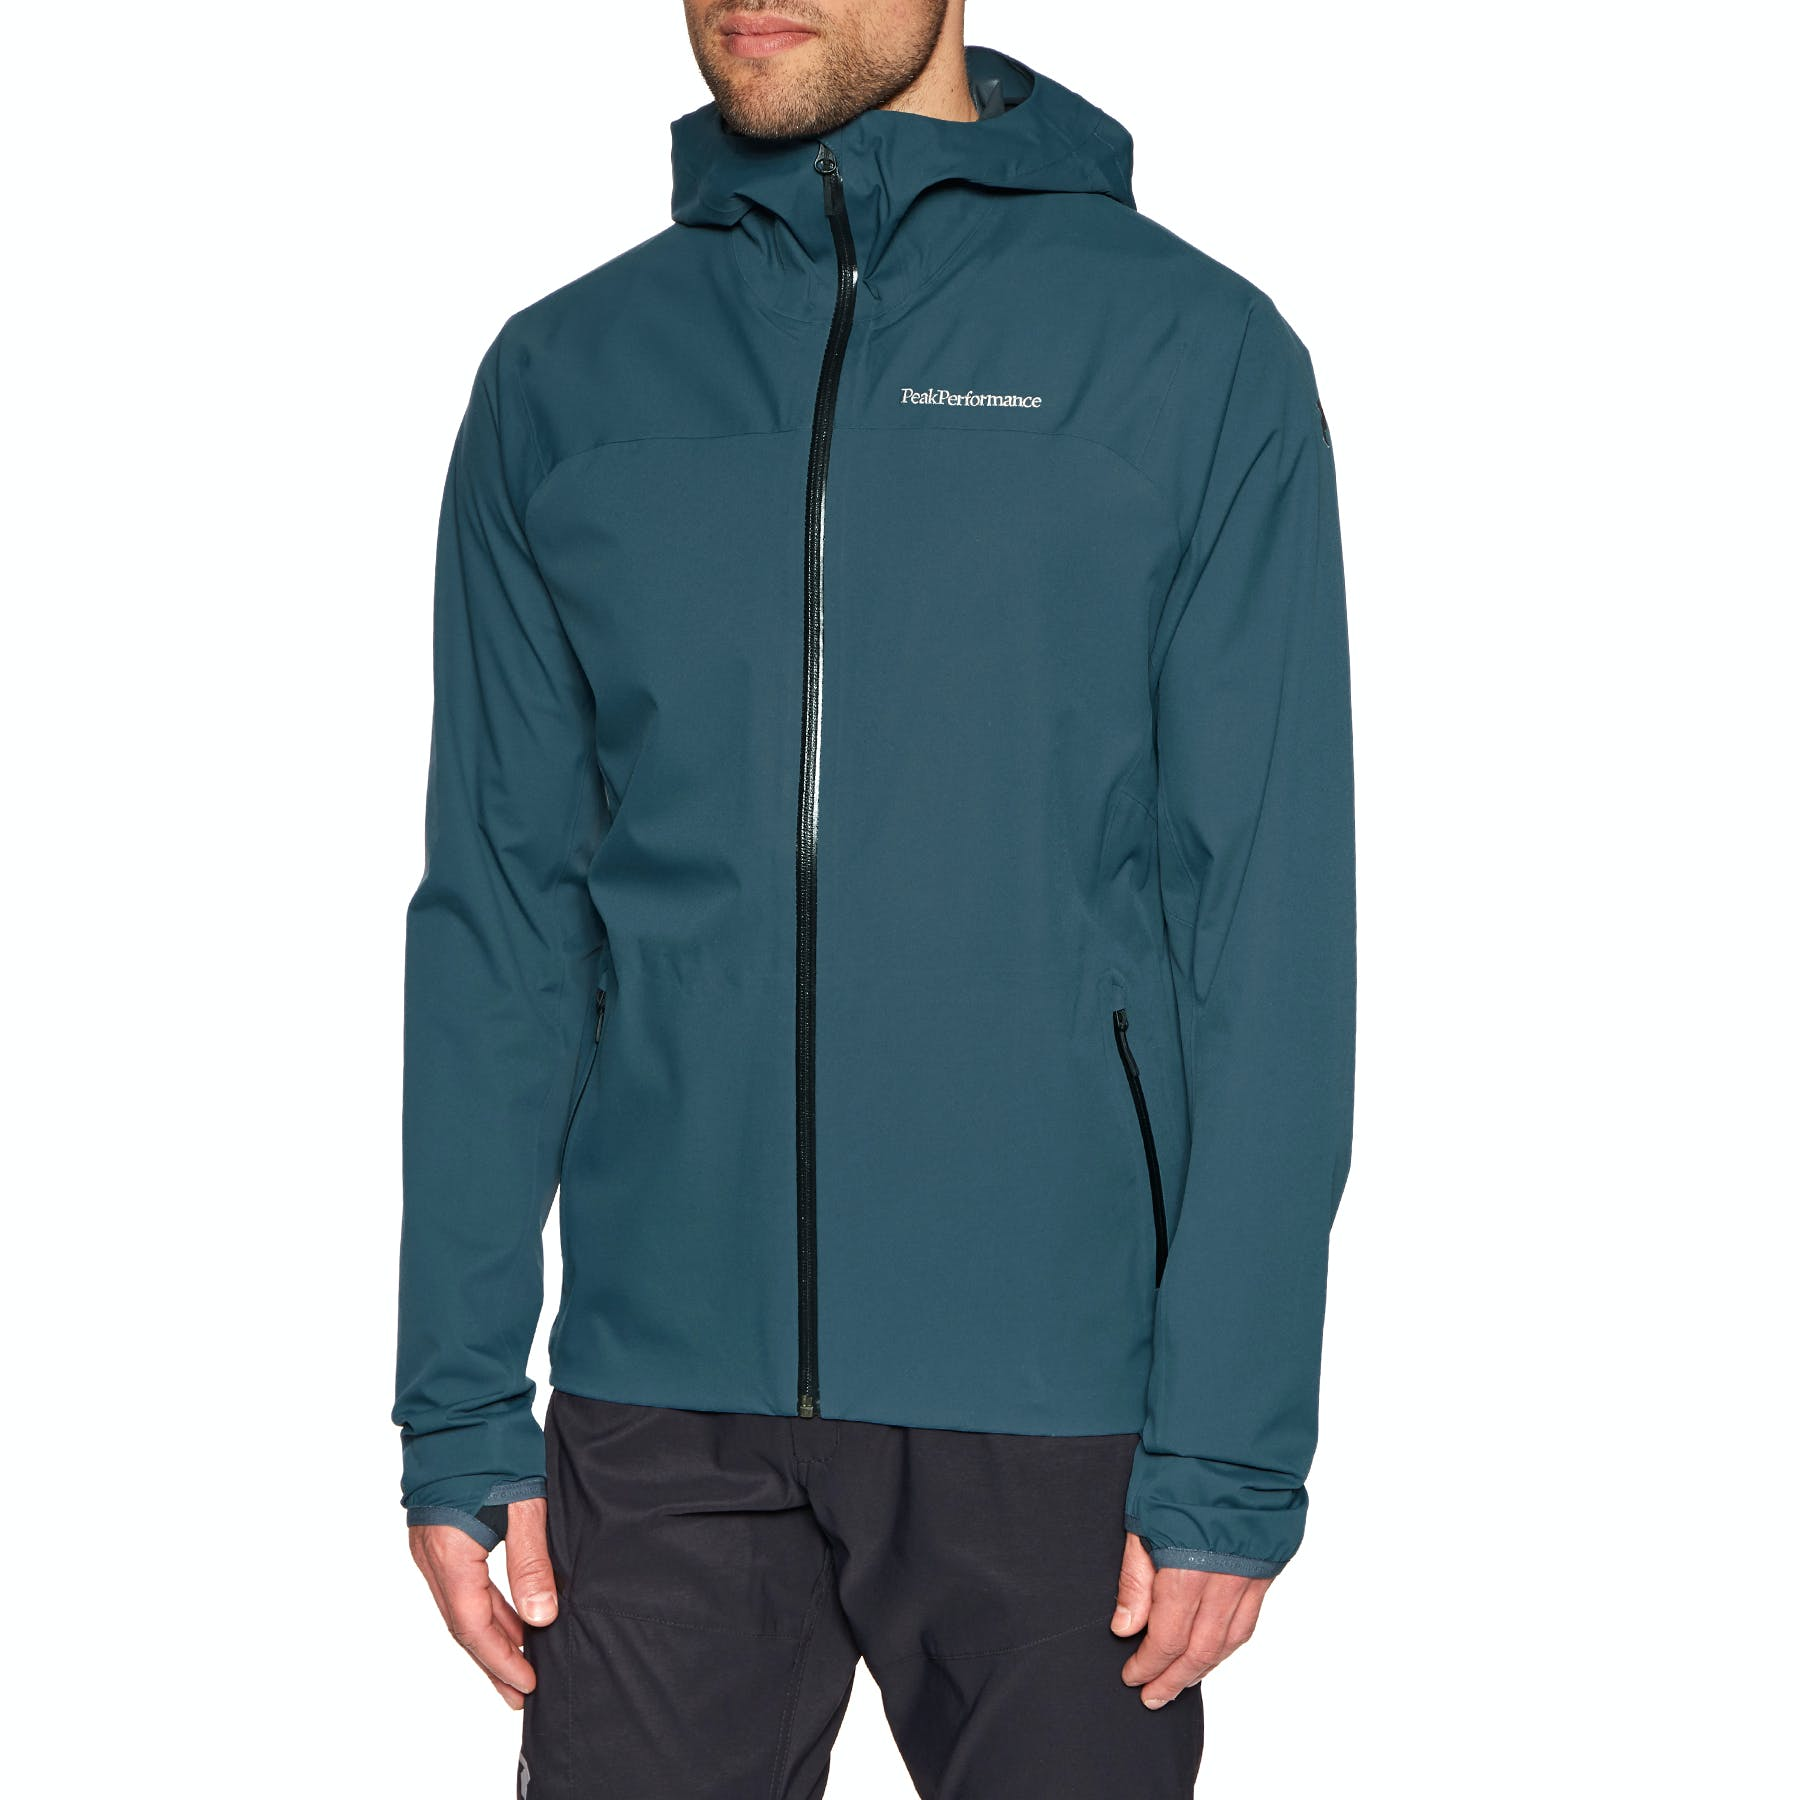 new concept 04f81 3cc2e Peak Performance Eastlight Outdoor Jacket - Free Delivery options on All  Orders from Surfdome UK